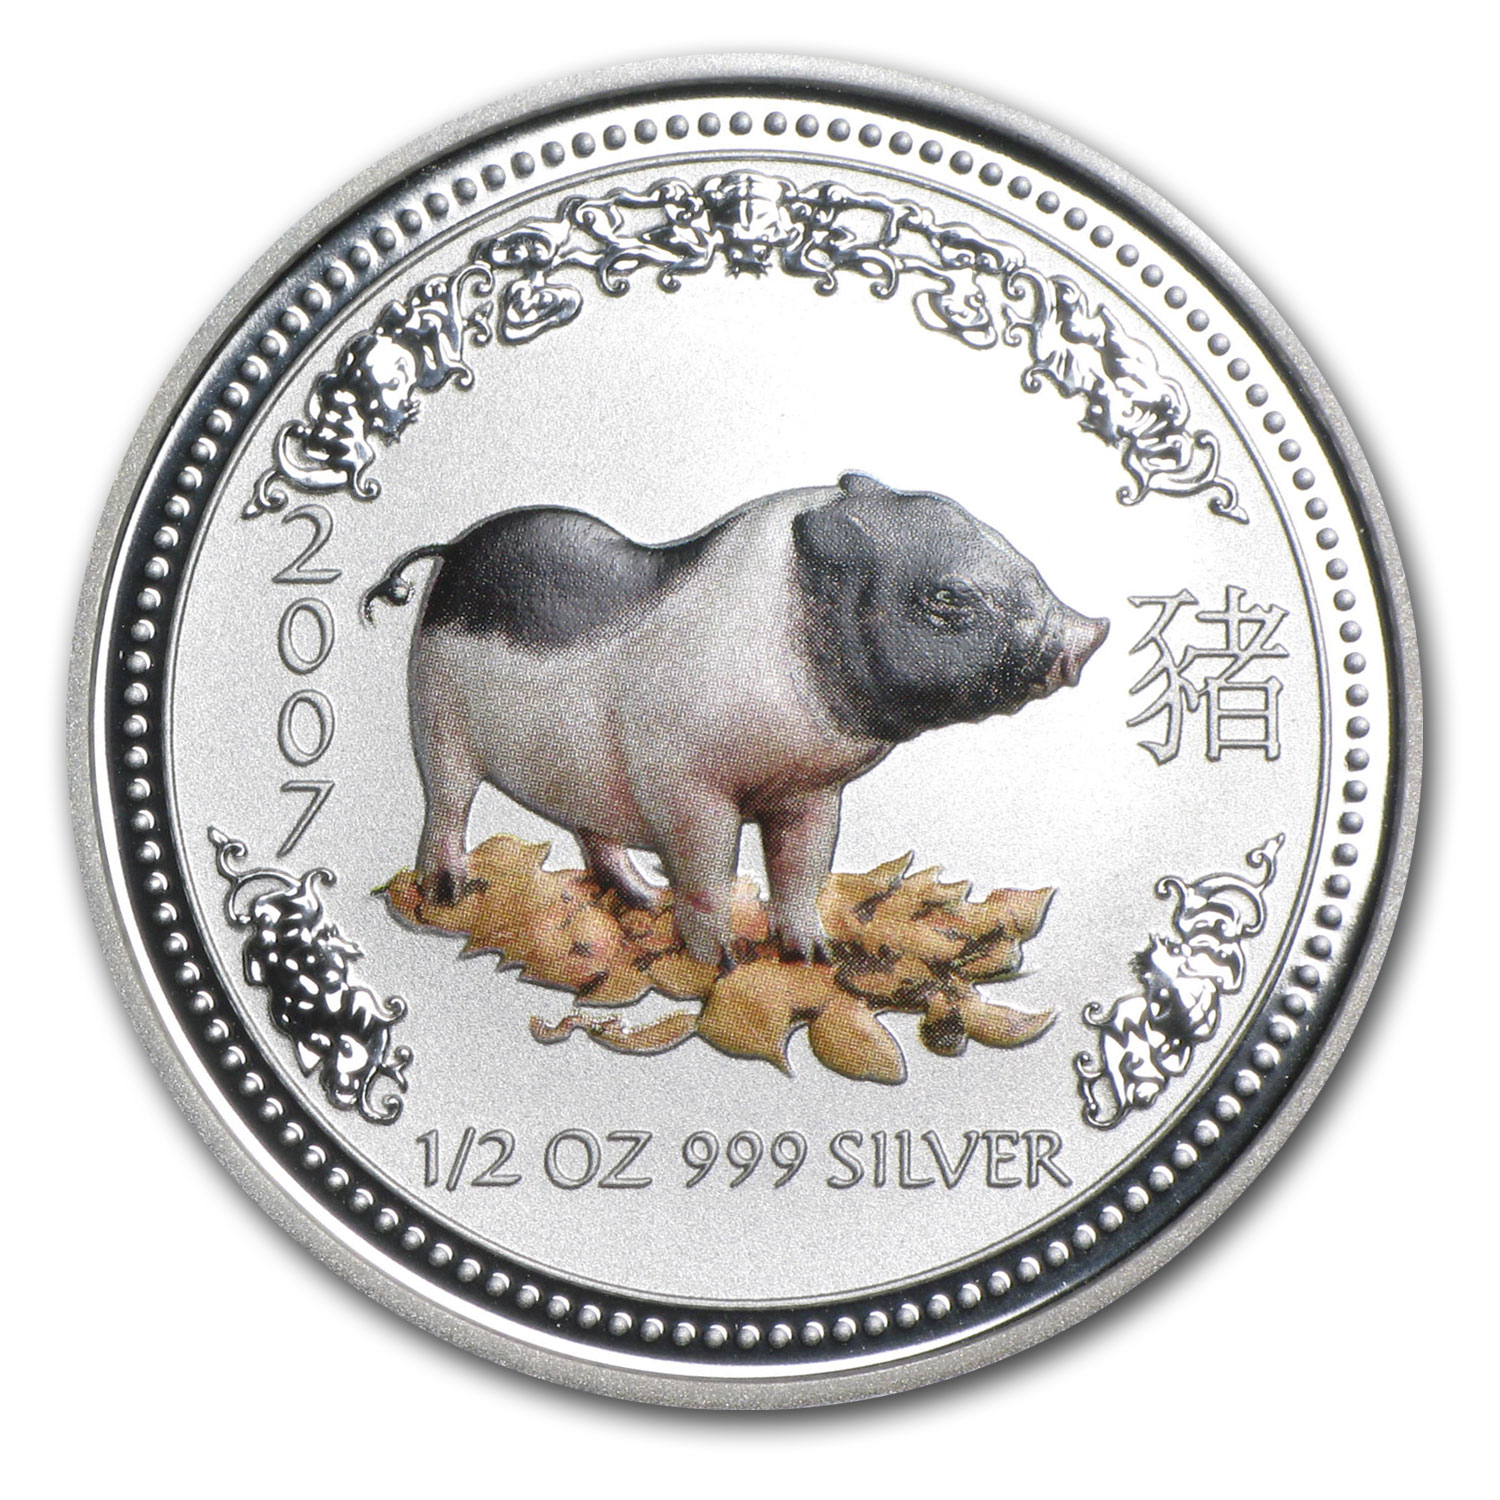 2007 Australia 1/2 oz Silver Year of the Pig BU (Colorized)